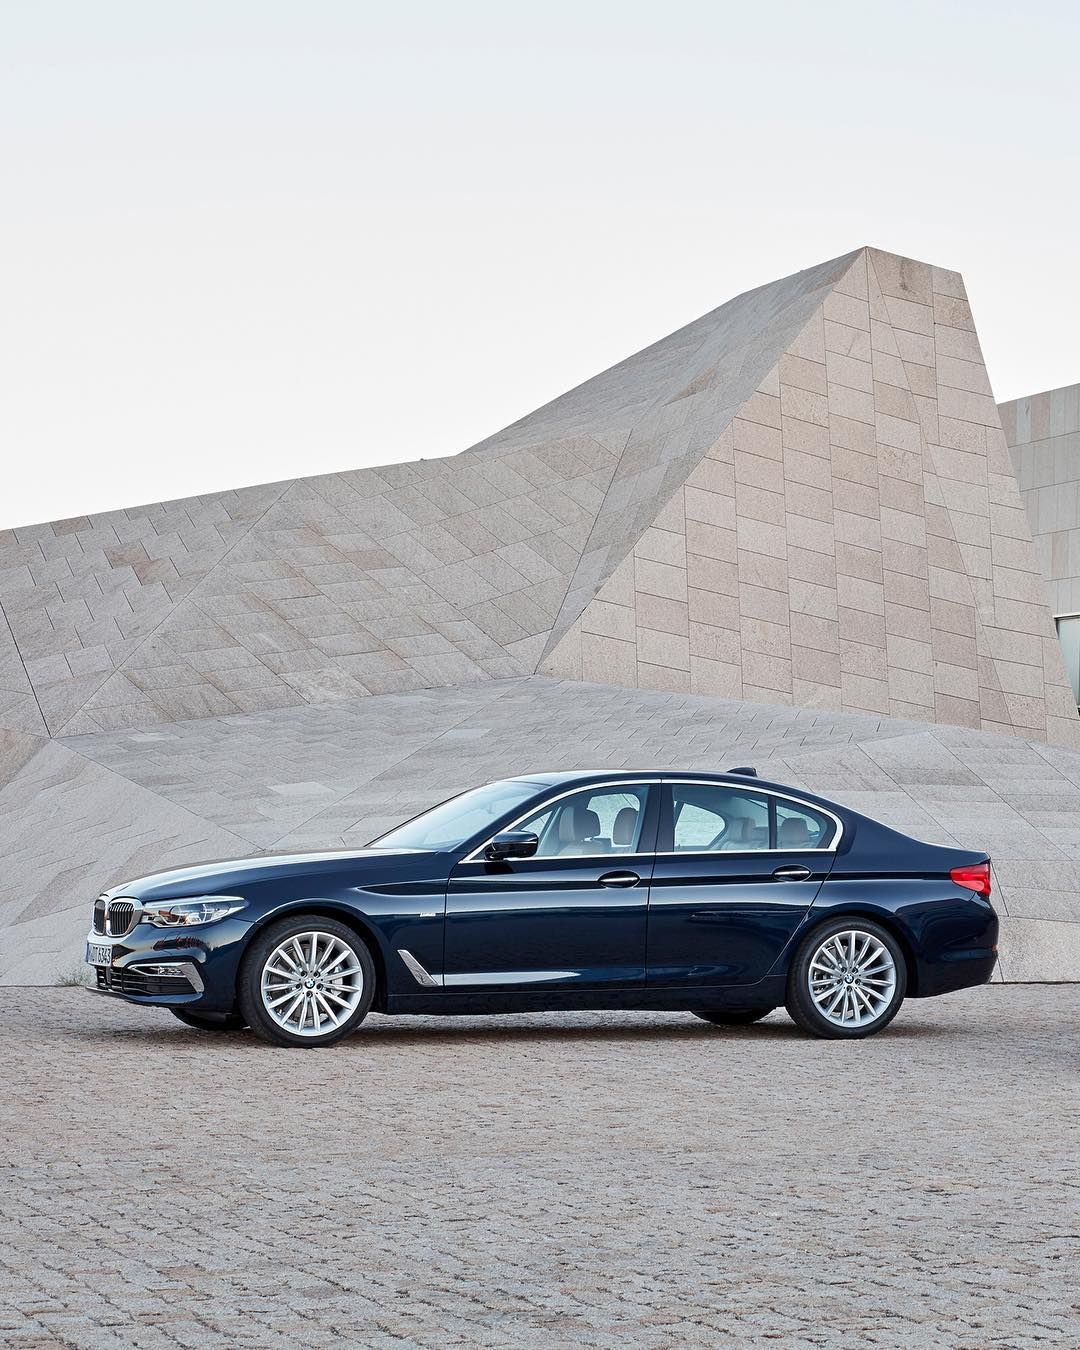 Choose Wisely To Get What You See The Bmw 5 Series Sedan As